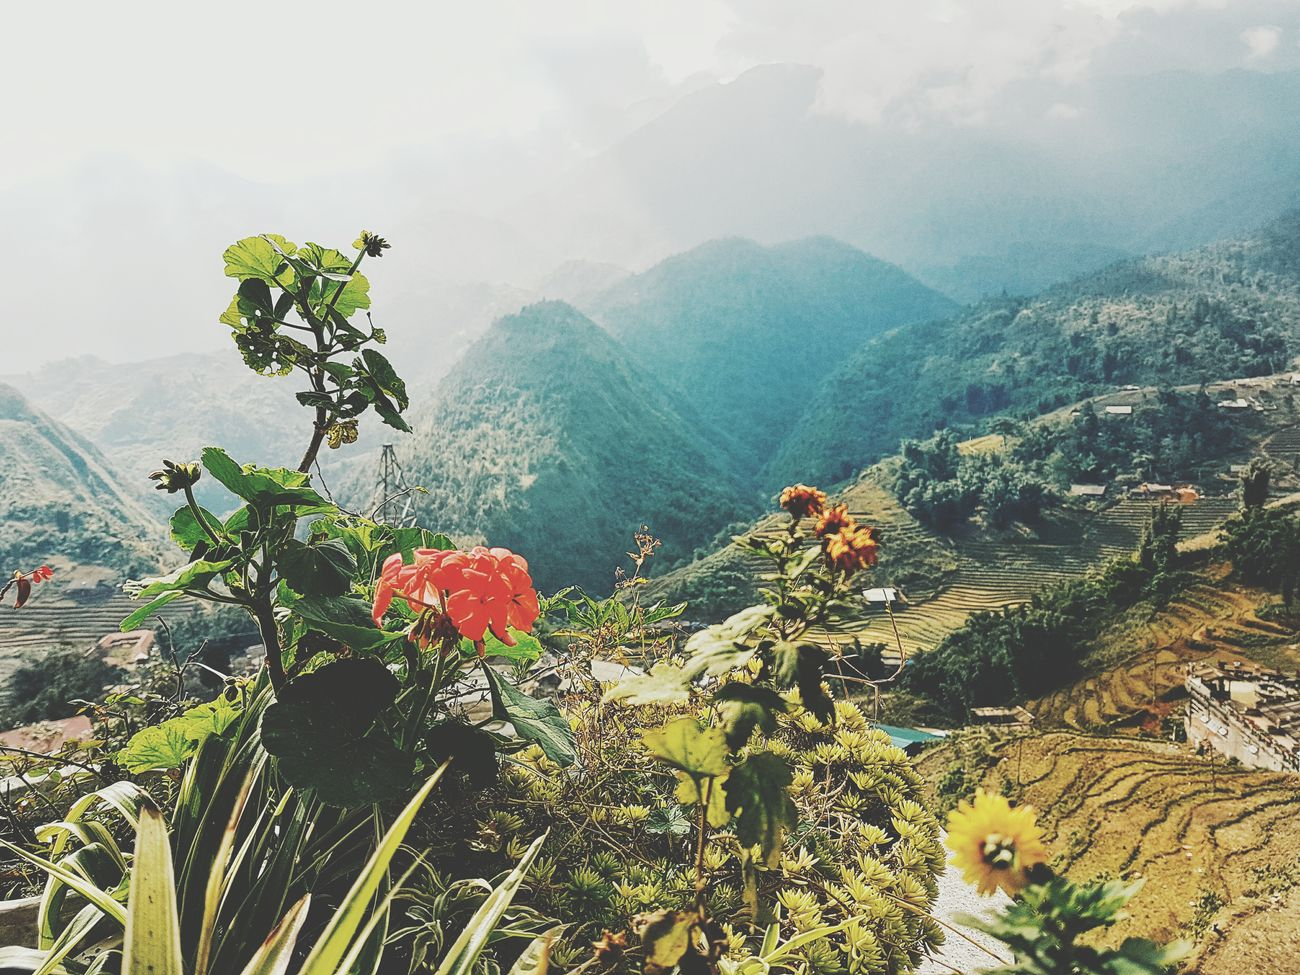 Moutain Nature Flower Beauty In Nature Landscape Freshness Photos Around You Quiet Time Moutain View Vacations Live, Love, Laugh